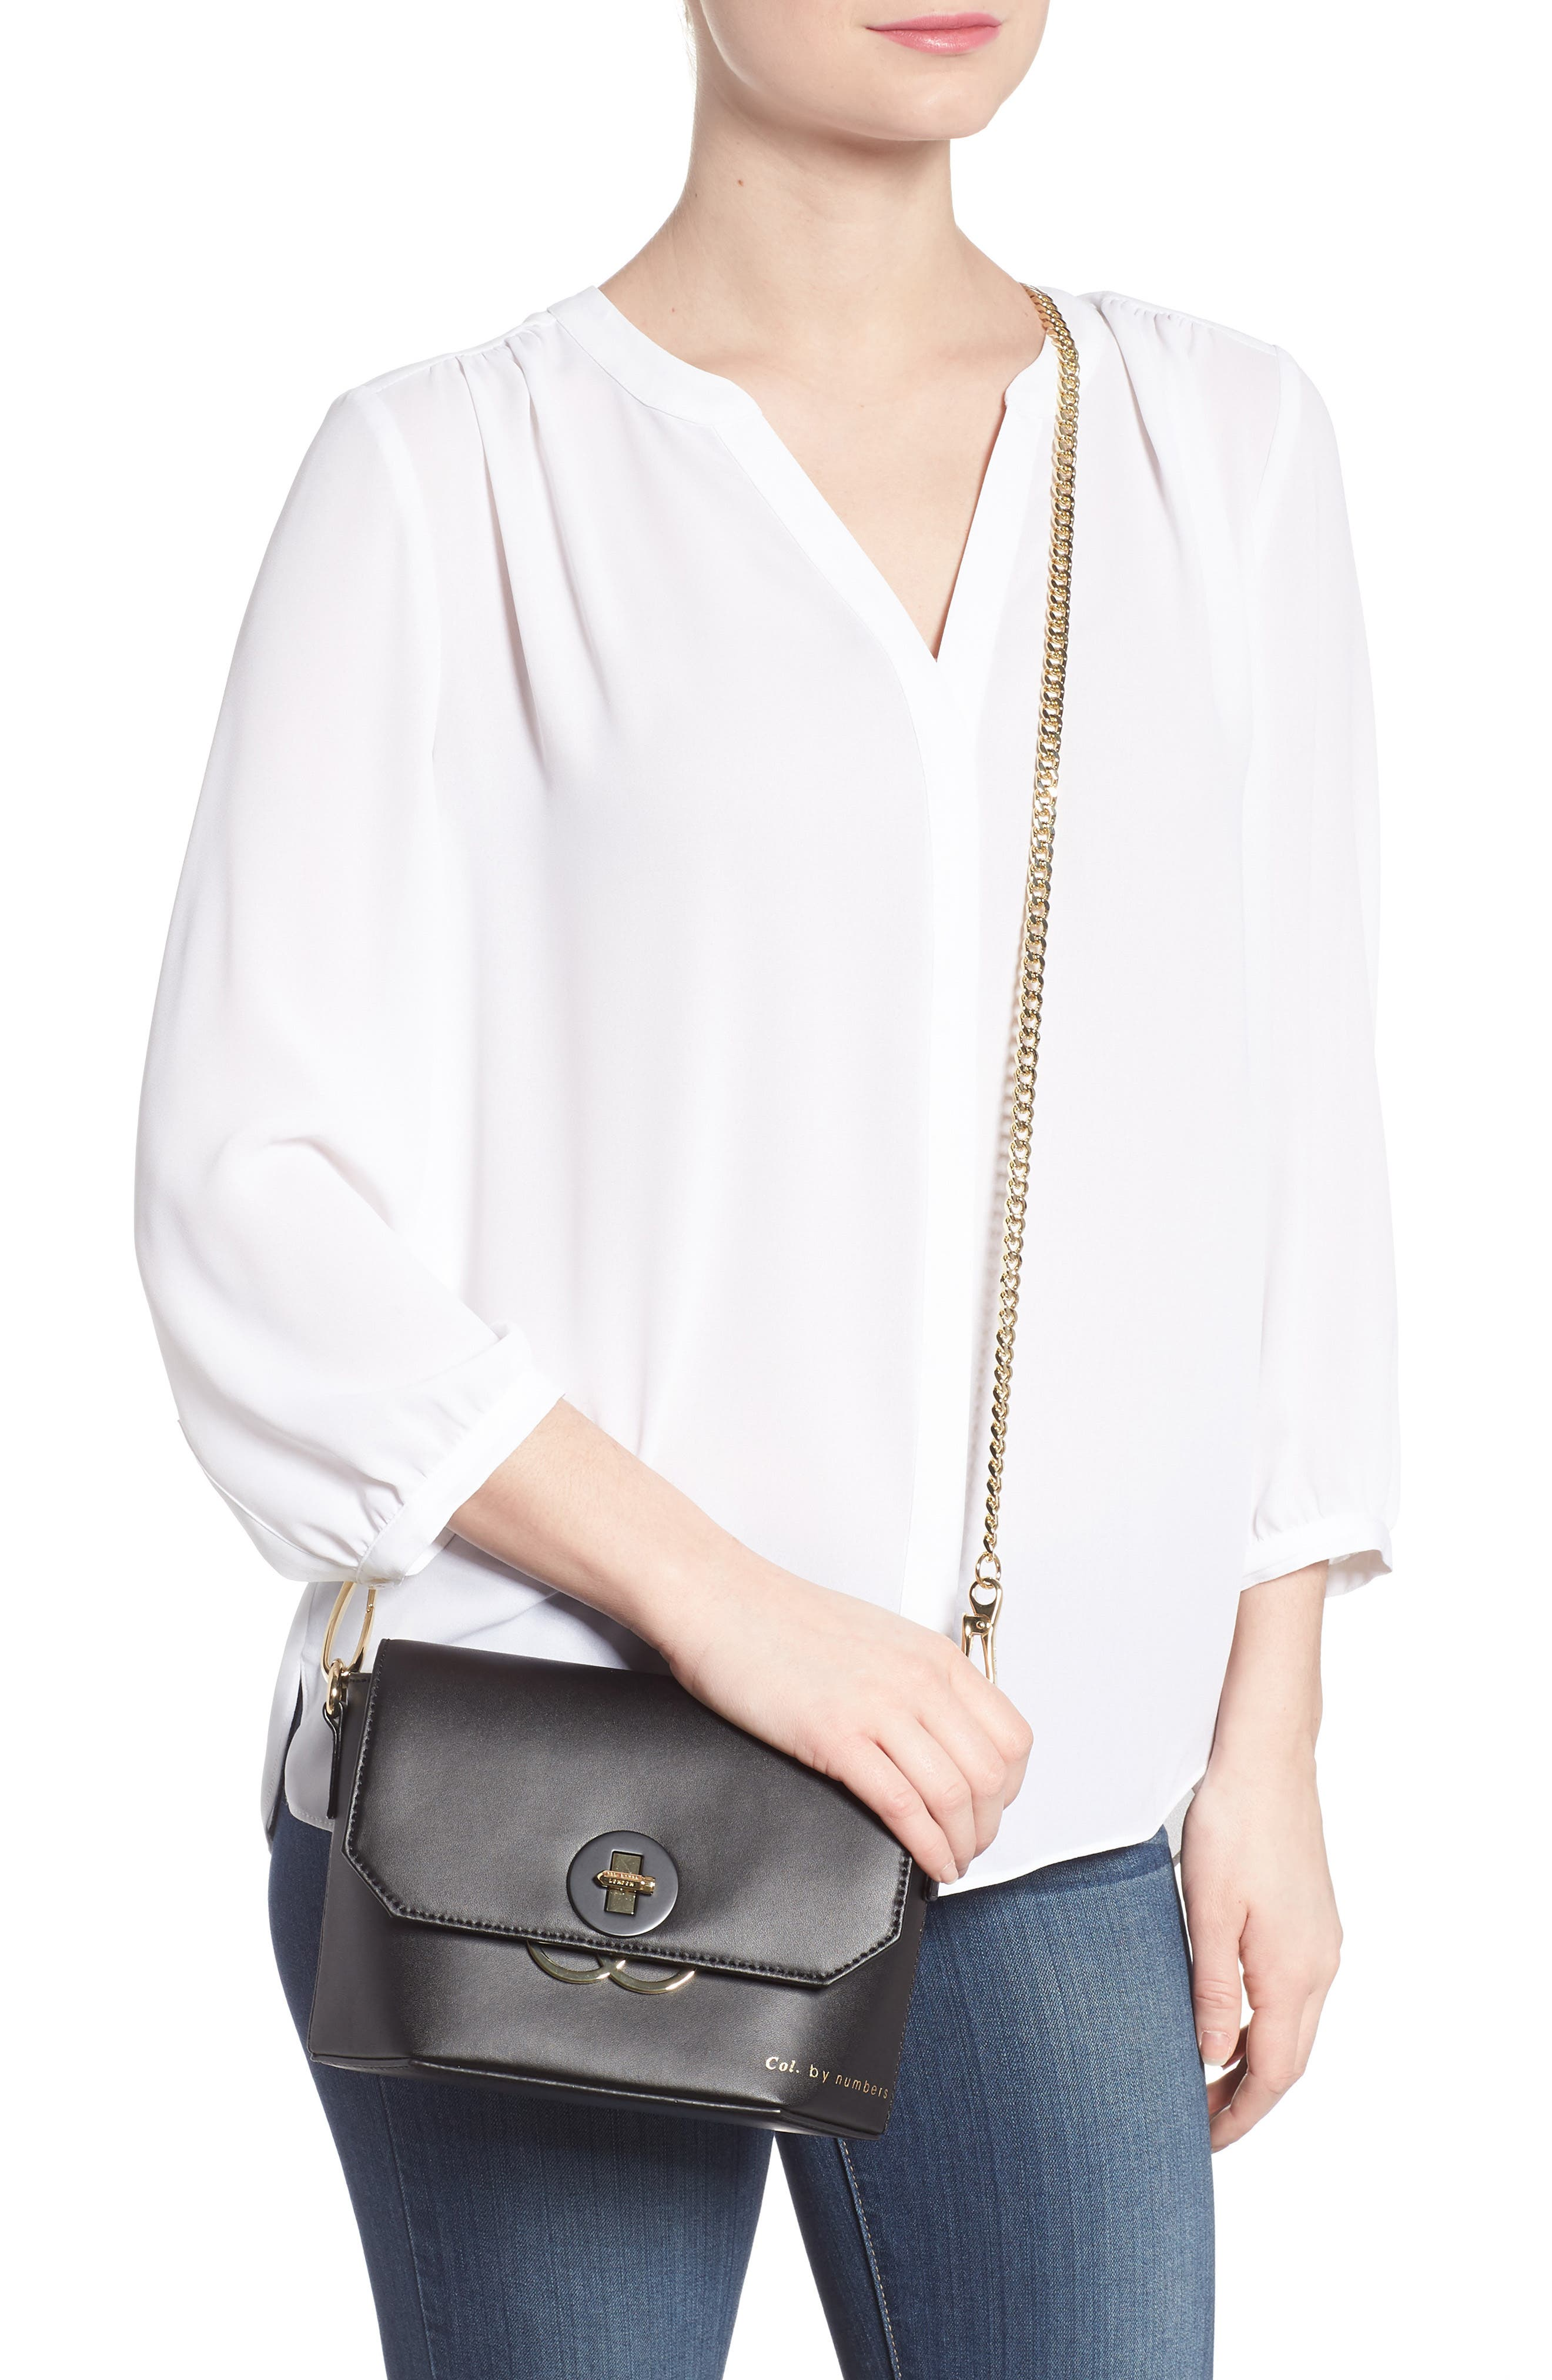 Colour by Numbers Leather Crossbody Bag,                             Alternate thumbnail 2, color,                             001